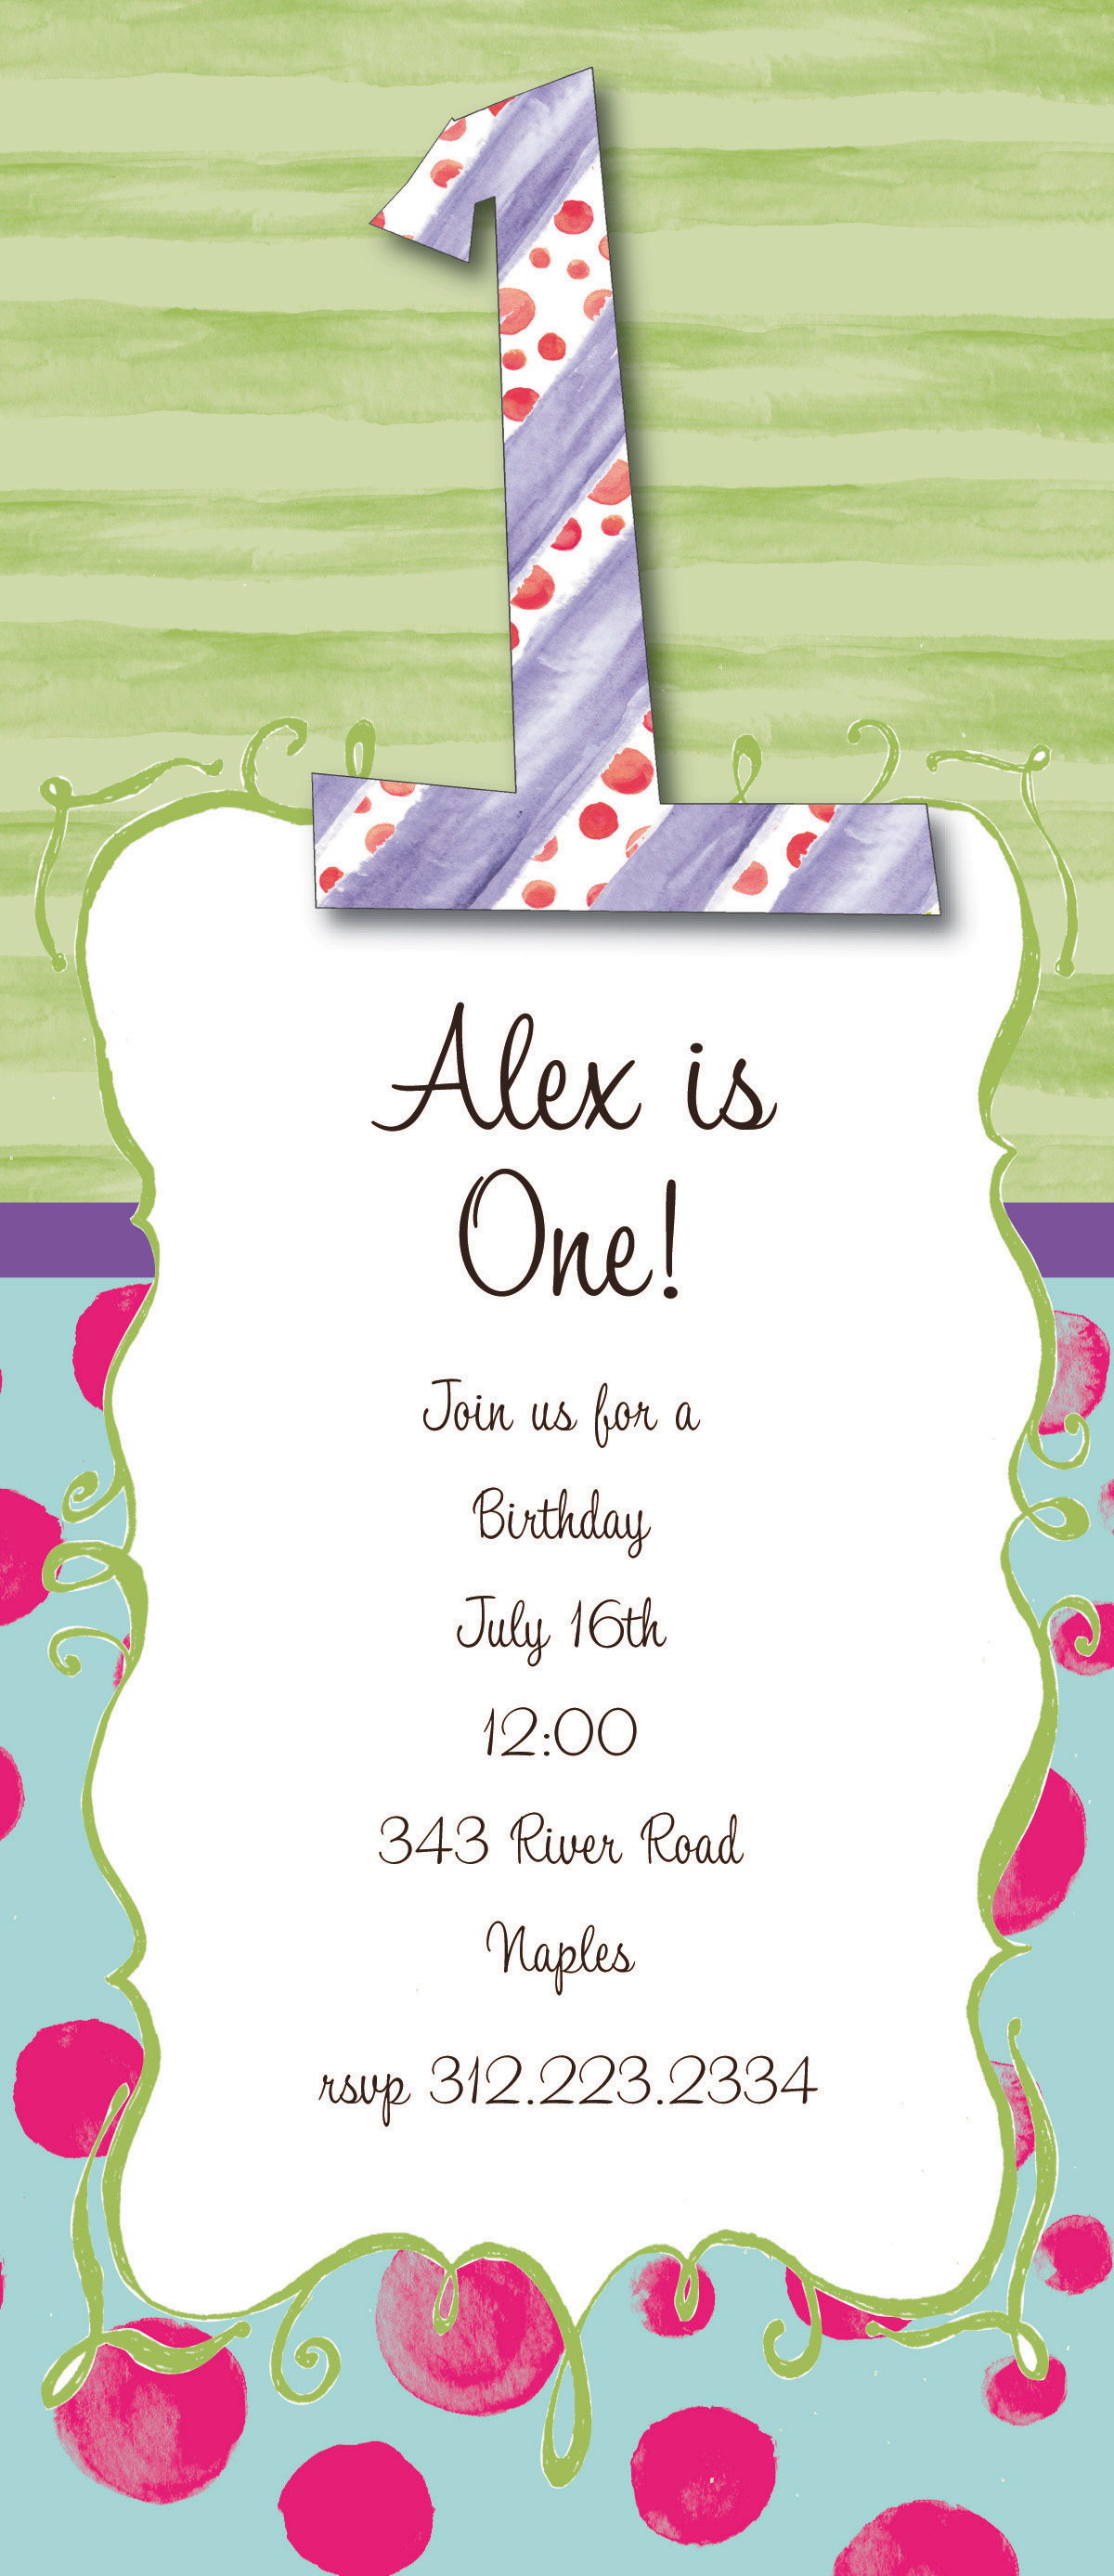 Big One - This fun 4x9.25 invitation comes  blank or let us print them for you. Cards come with optional embellishment. Please indicate in order if you would like Glitter added. Coordinating color envelopes are included.